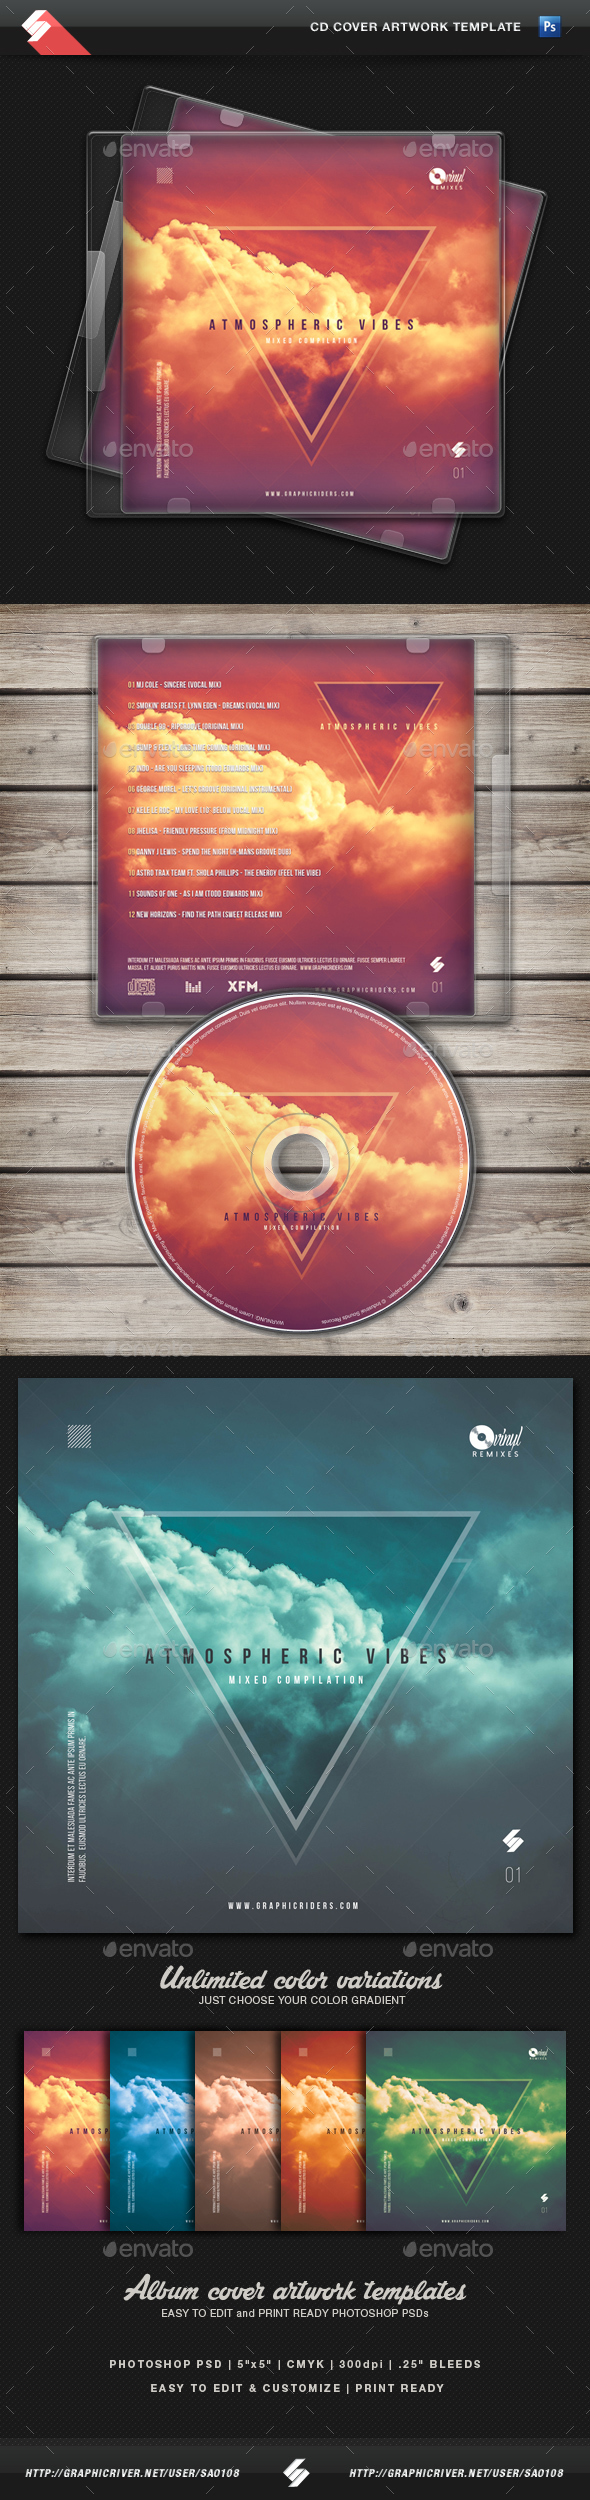 Atmospheric Vibes - CD Cover Artwork Template - CD & DVD Artwork Print Templates